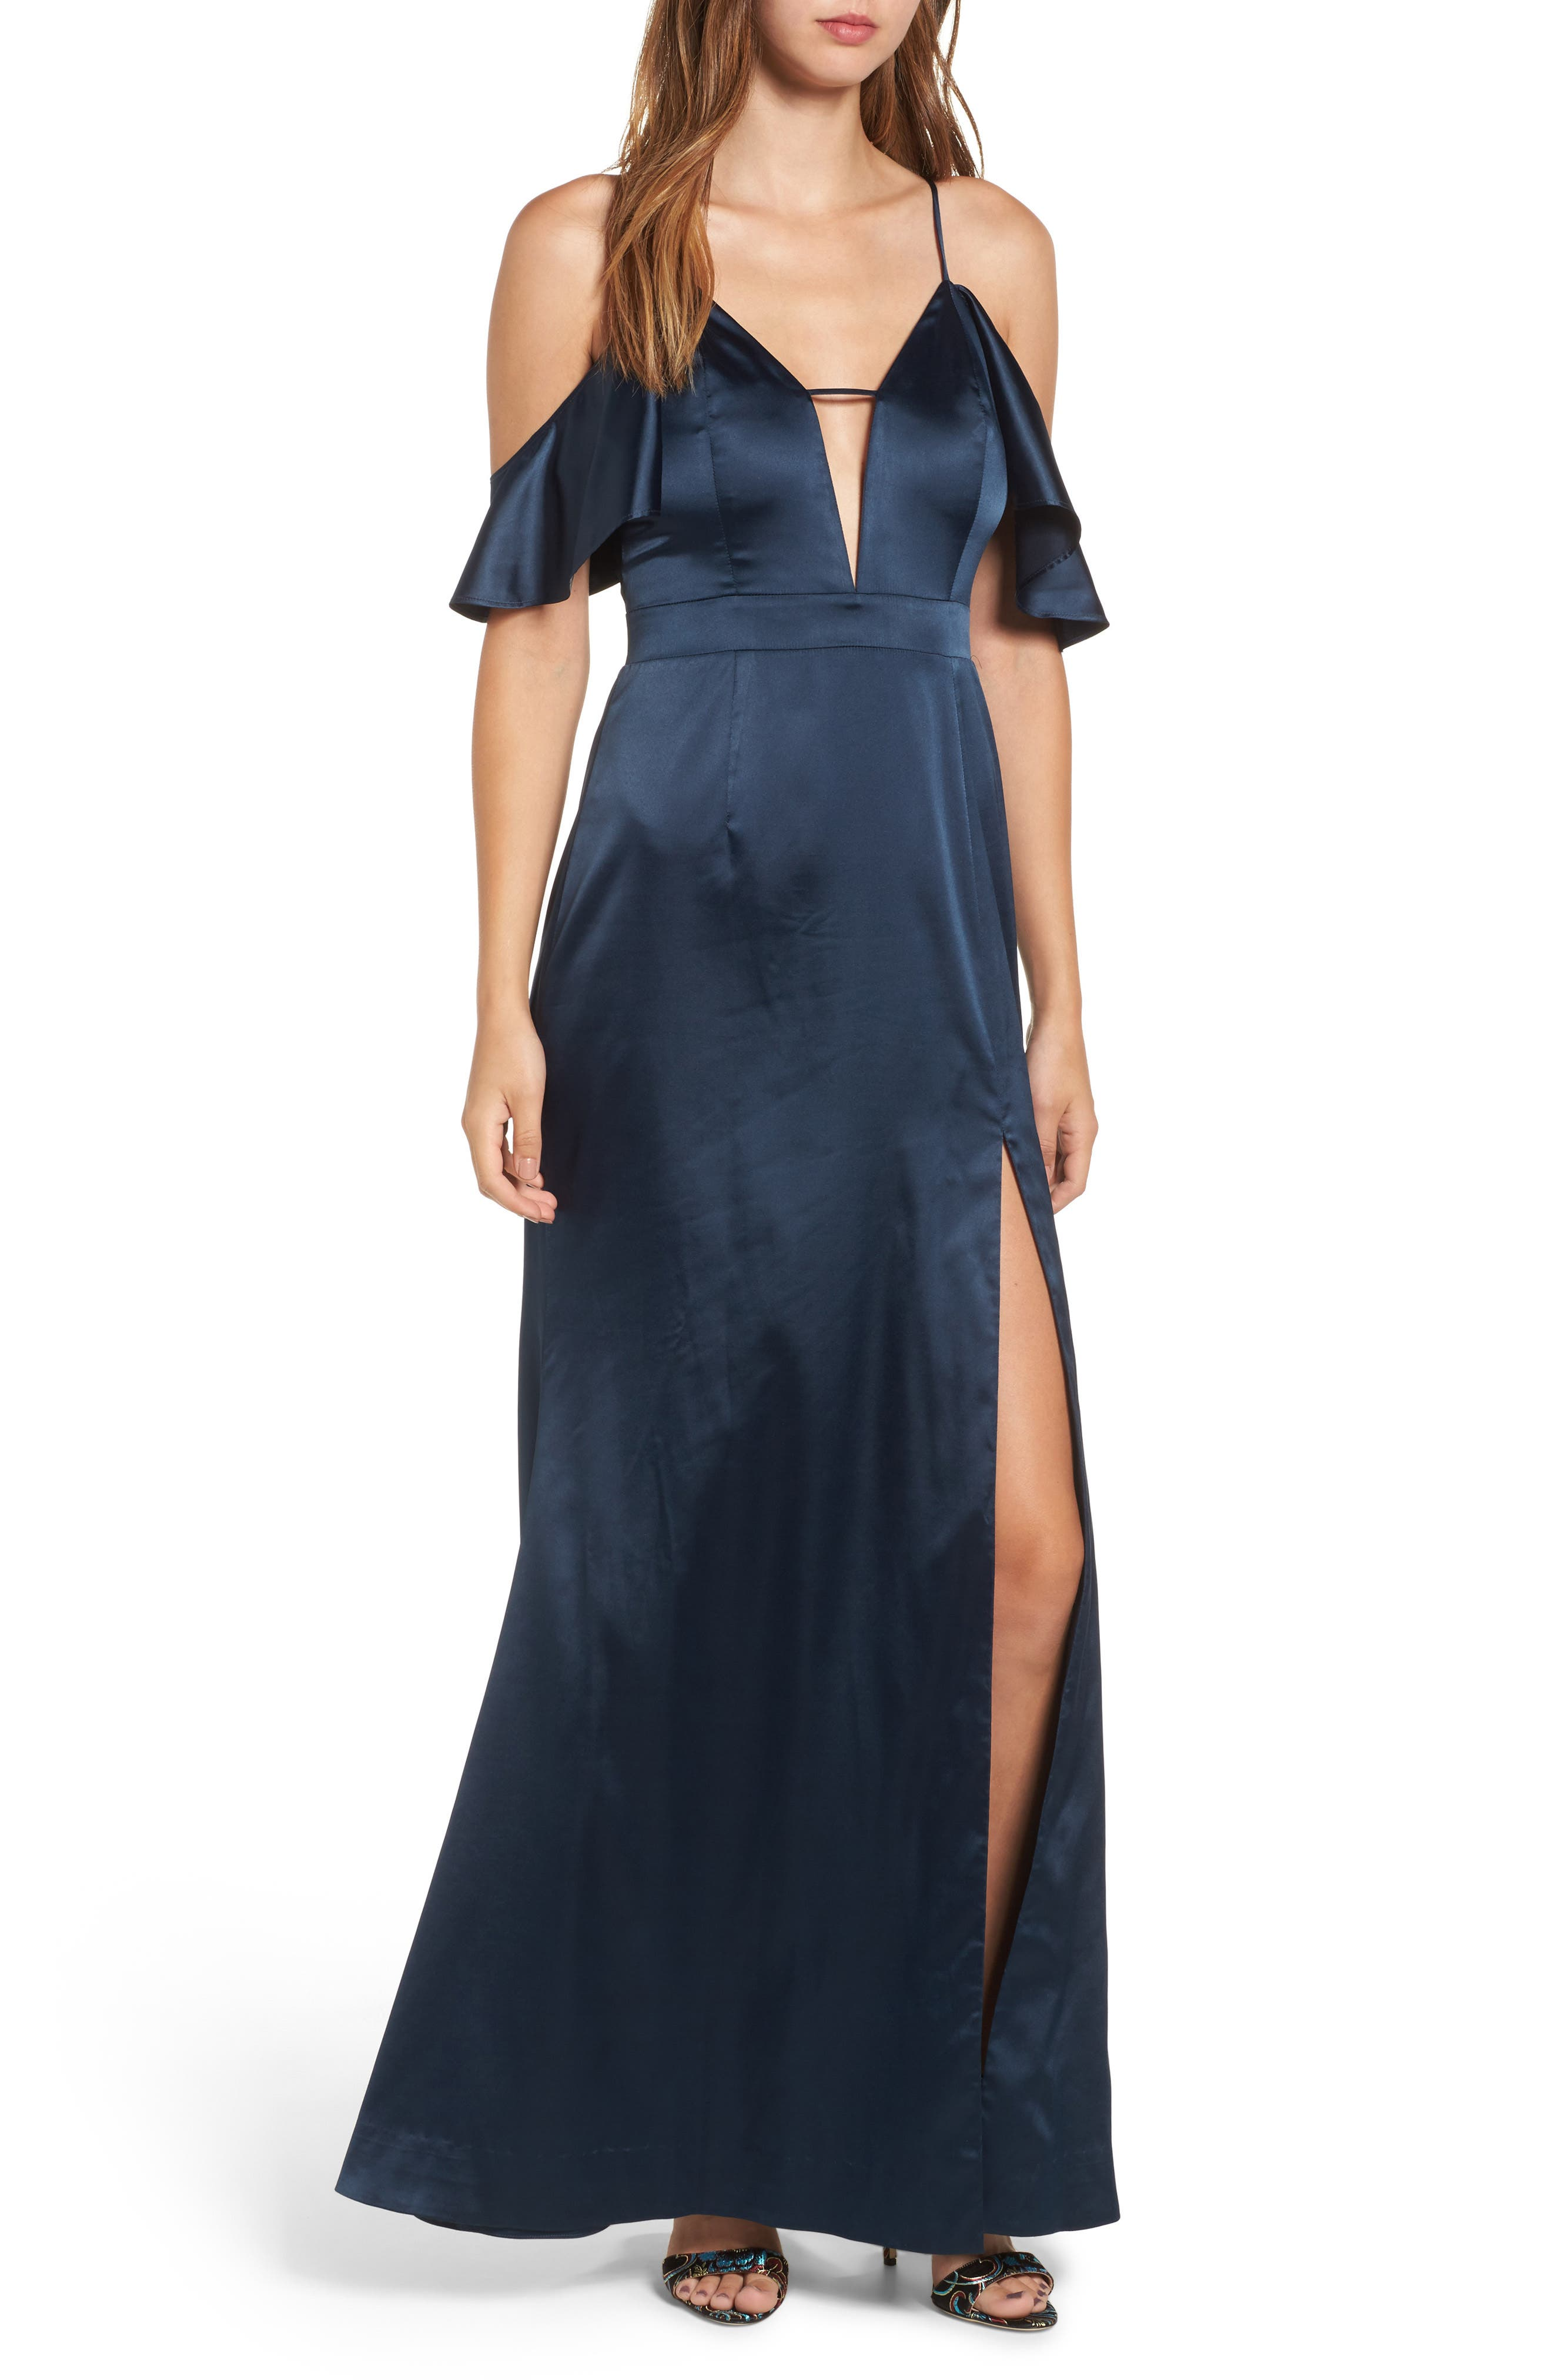 Alternate Image 1 Selected - NBD Niaa Cold Shoulder Gown